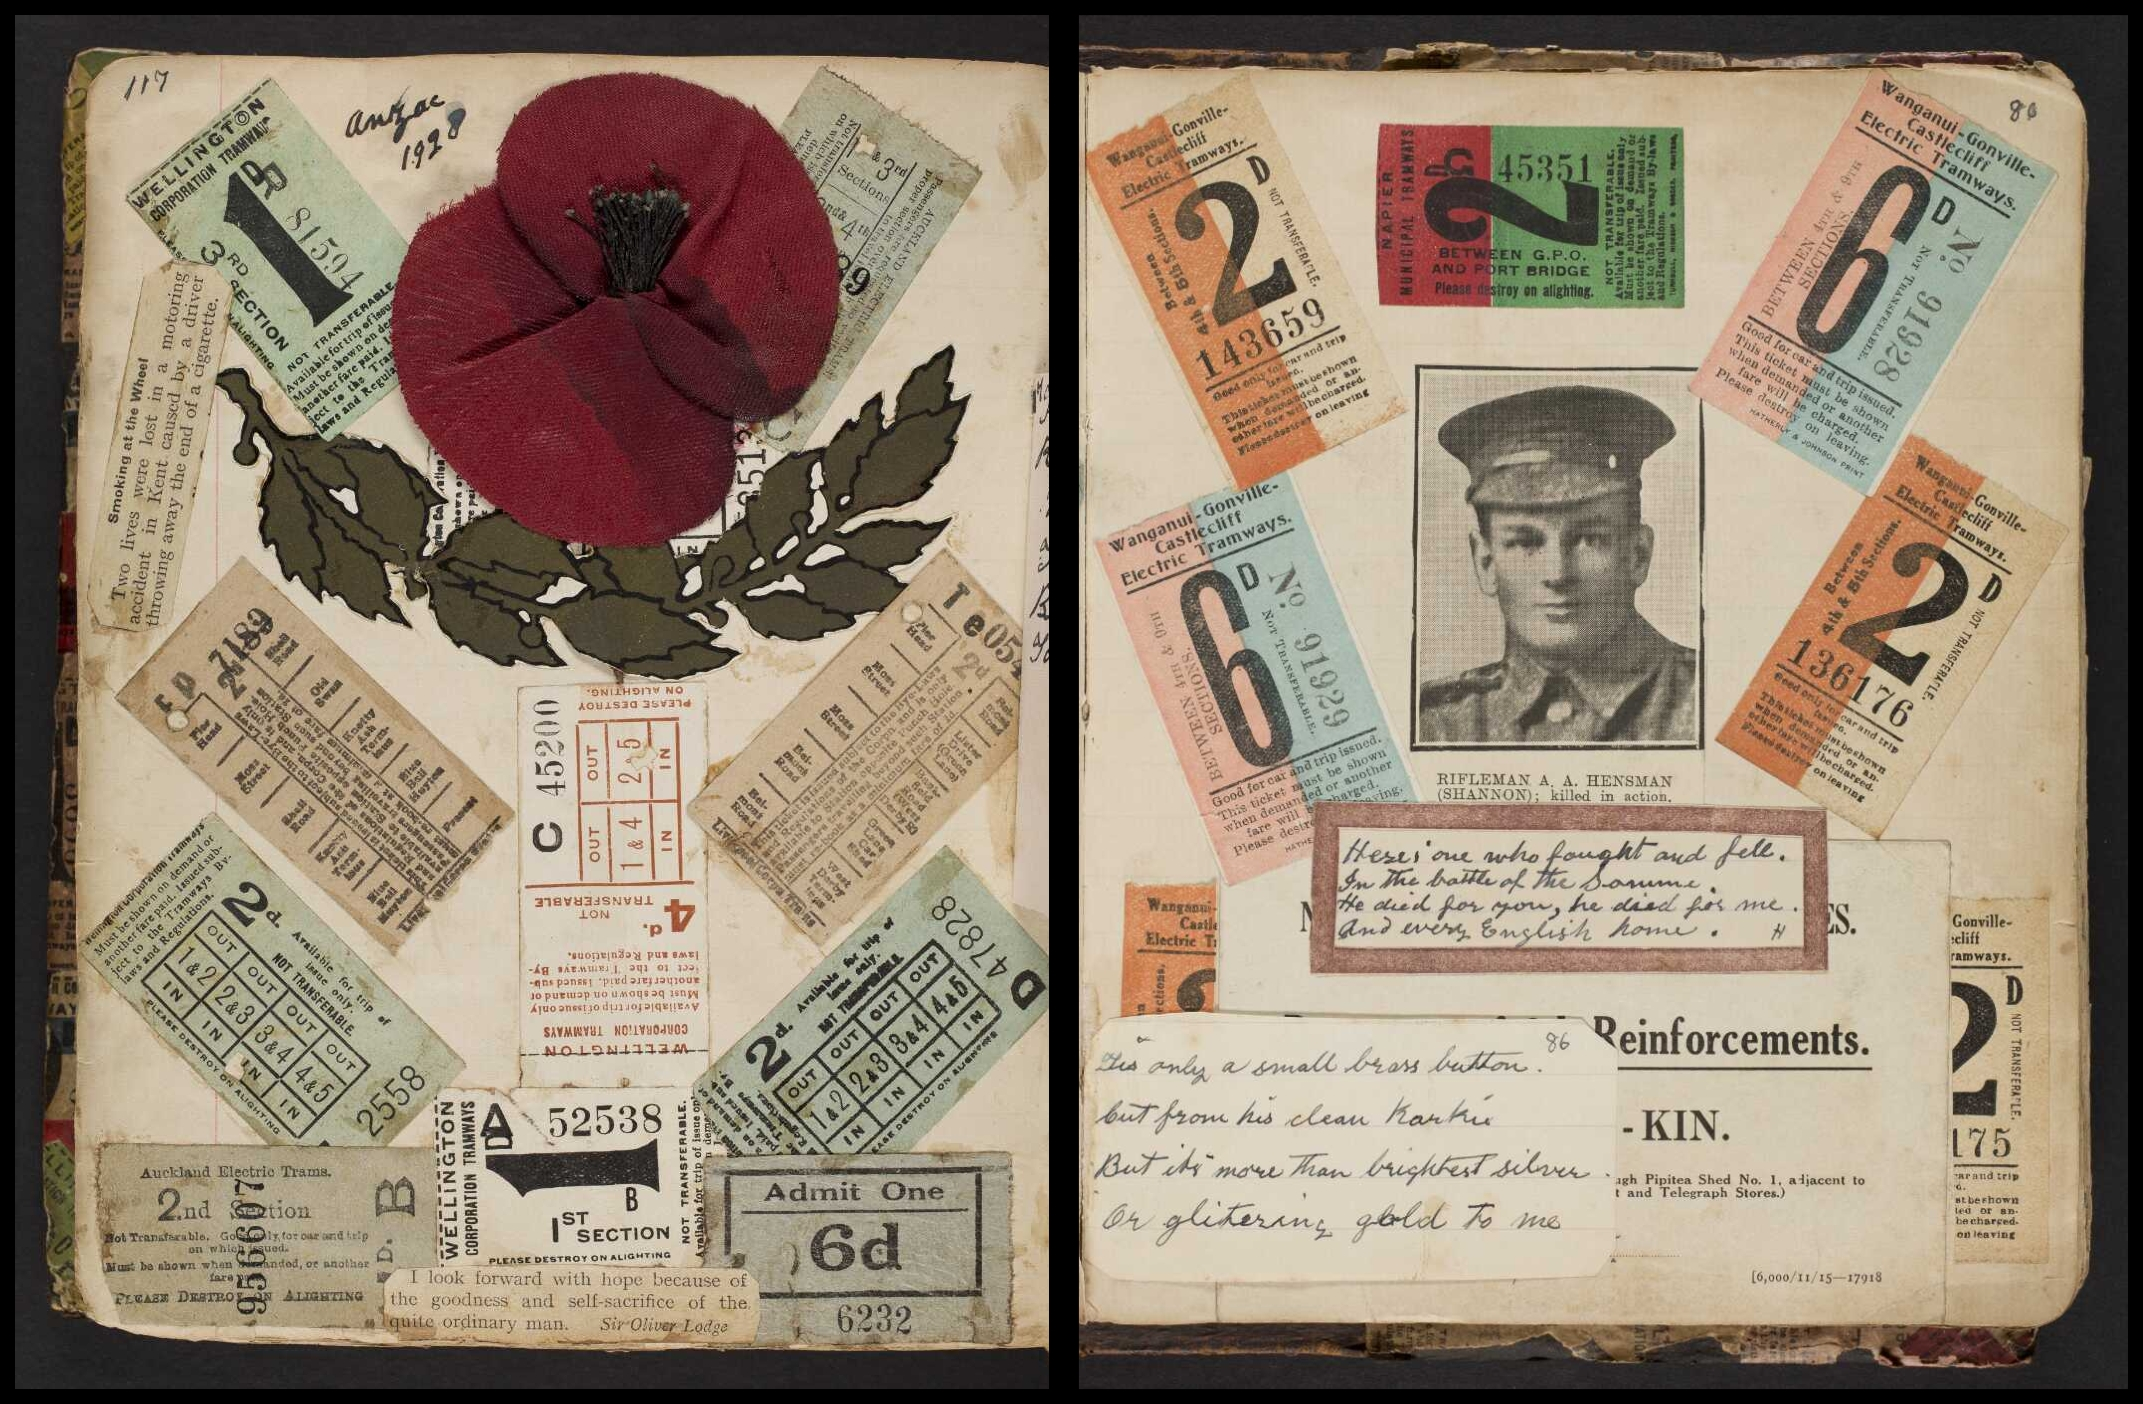 Two pages from a scrapbook shown side by side containing clippings and inscriptions.